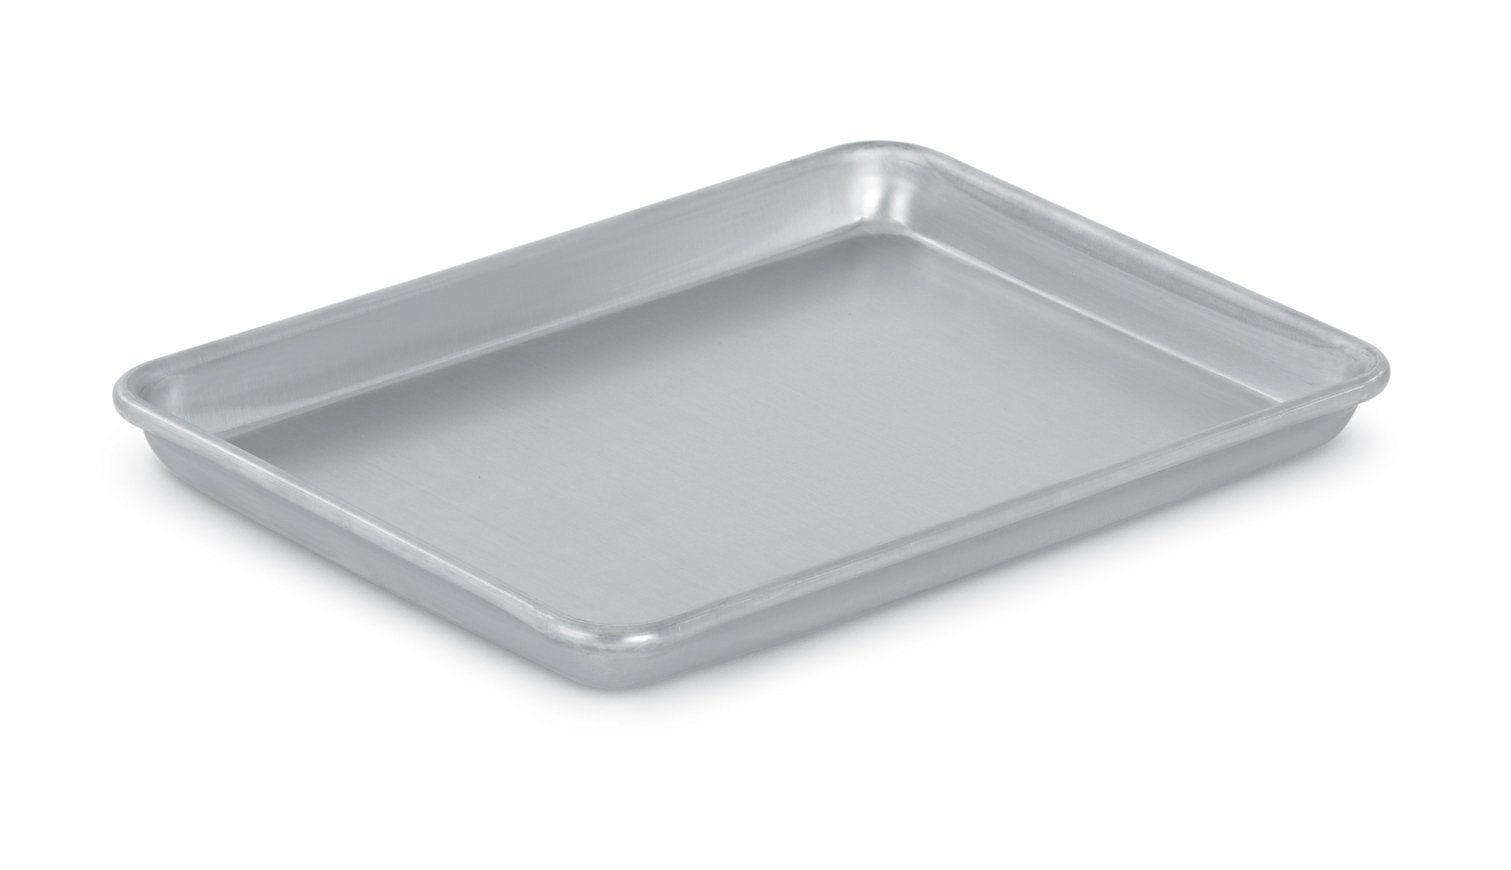 Vollrath (5220) 9-1/2'' x 13'' Quarter Size Sheet Pan - Wear-Ever Collection